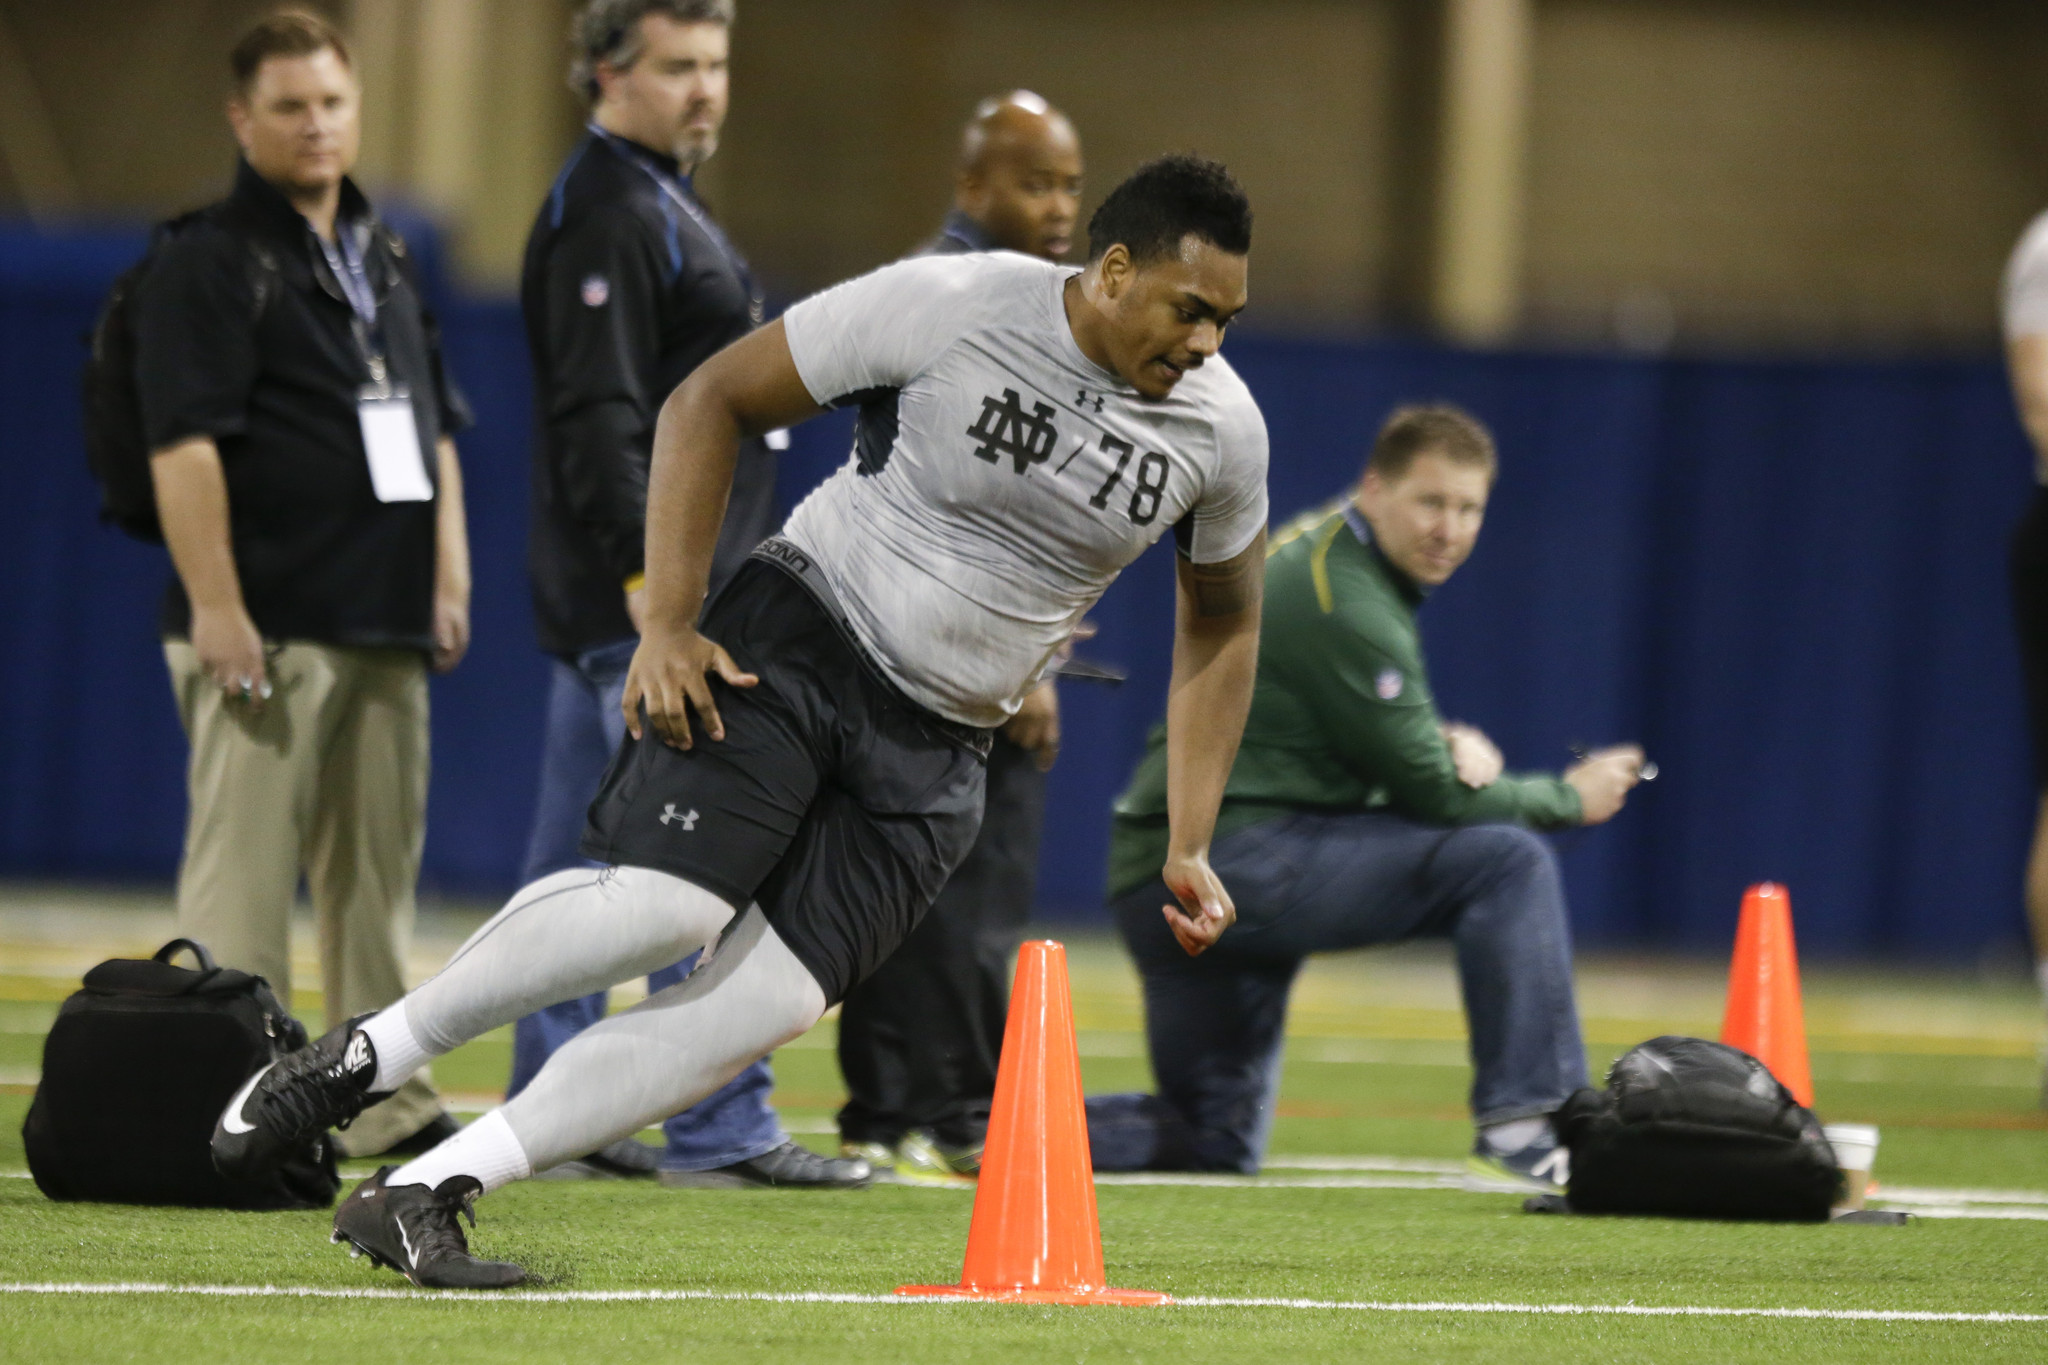 Ct-ronnie-stanley-notre-dame-nfl-draft-20160428